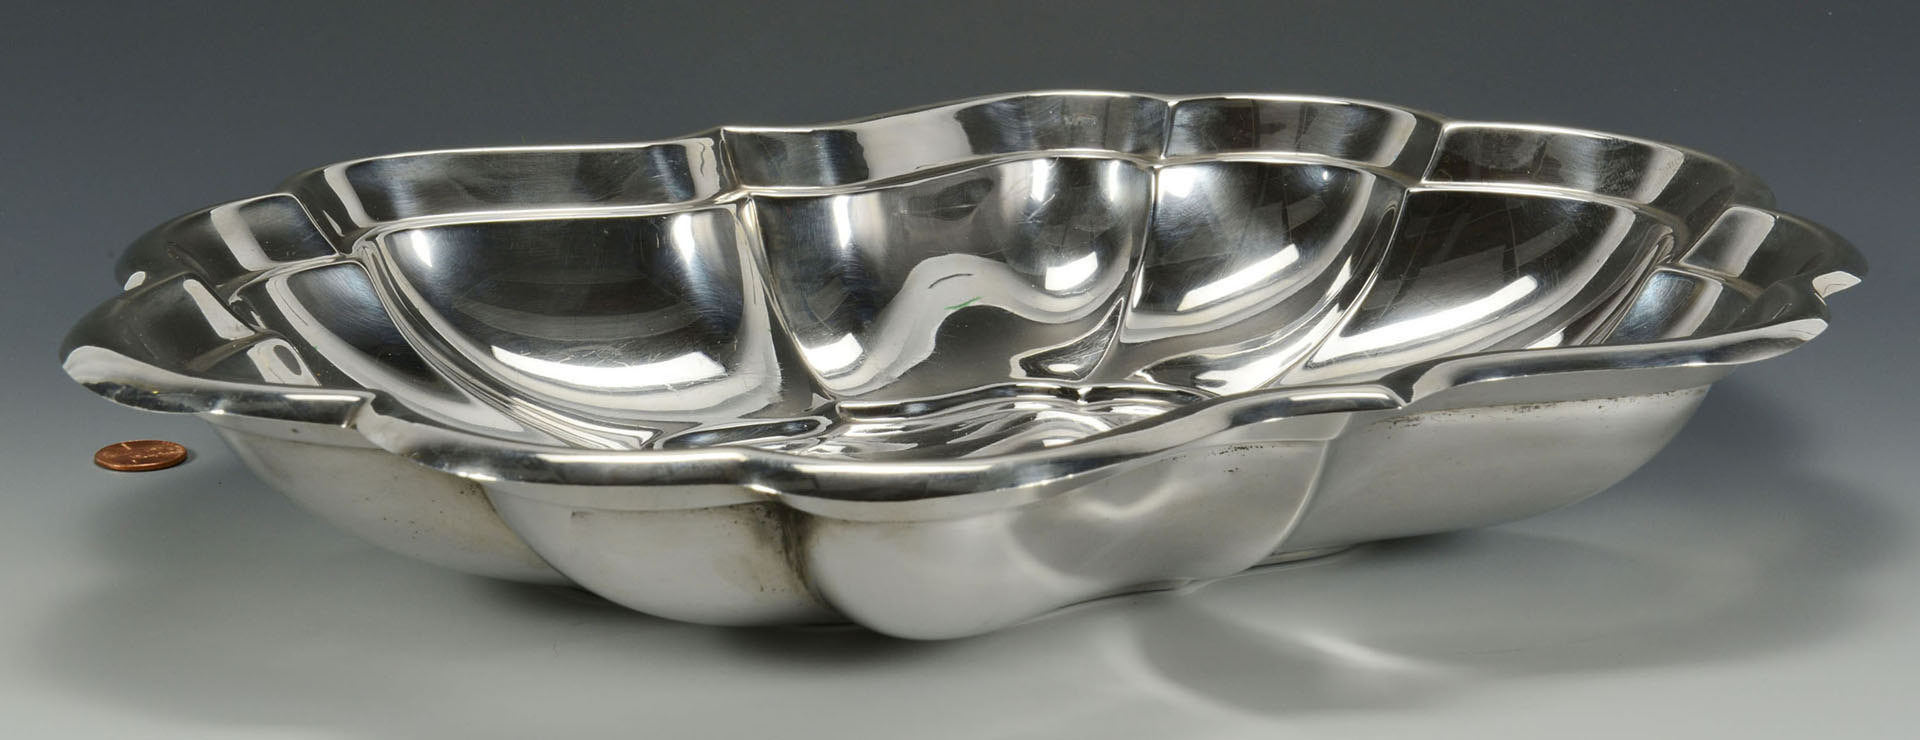 Lot 308: Reed & Barton silver oval fruit bowl